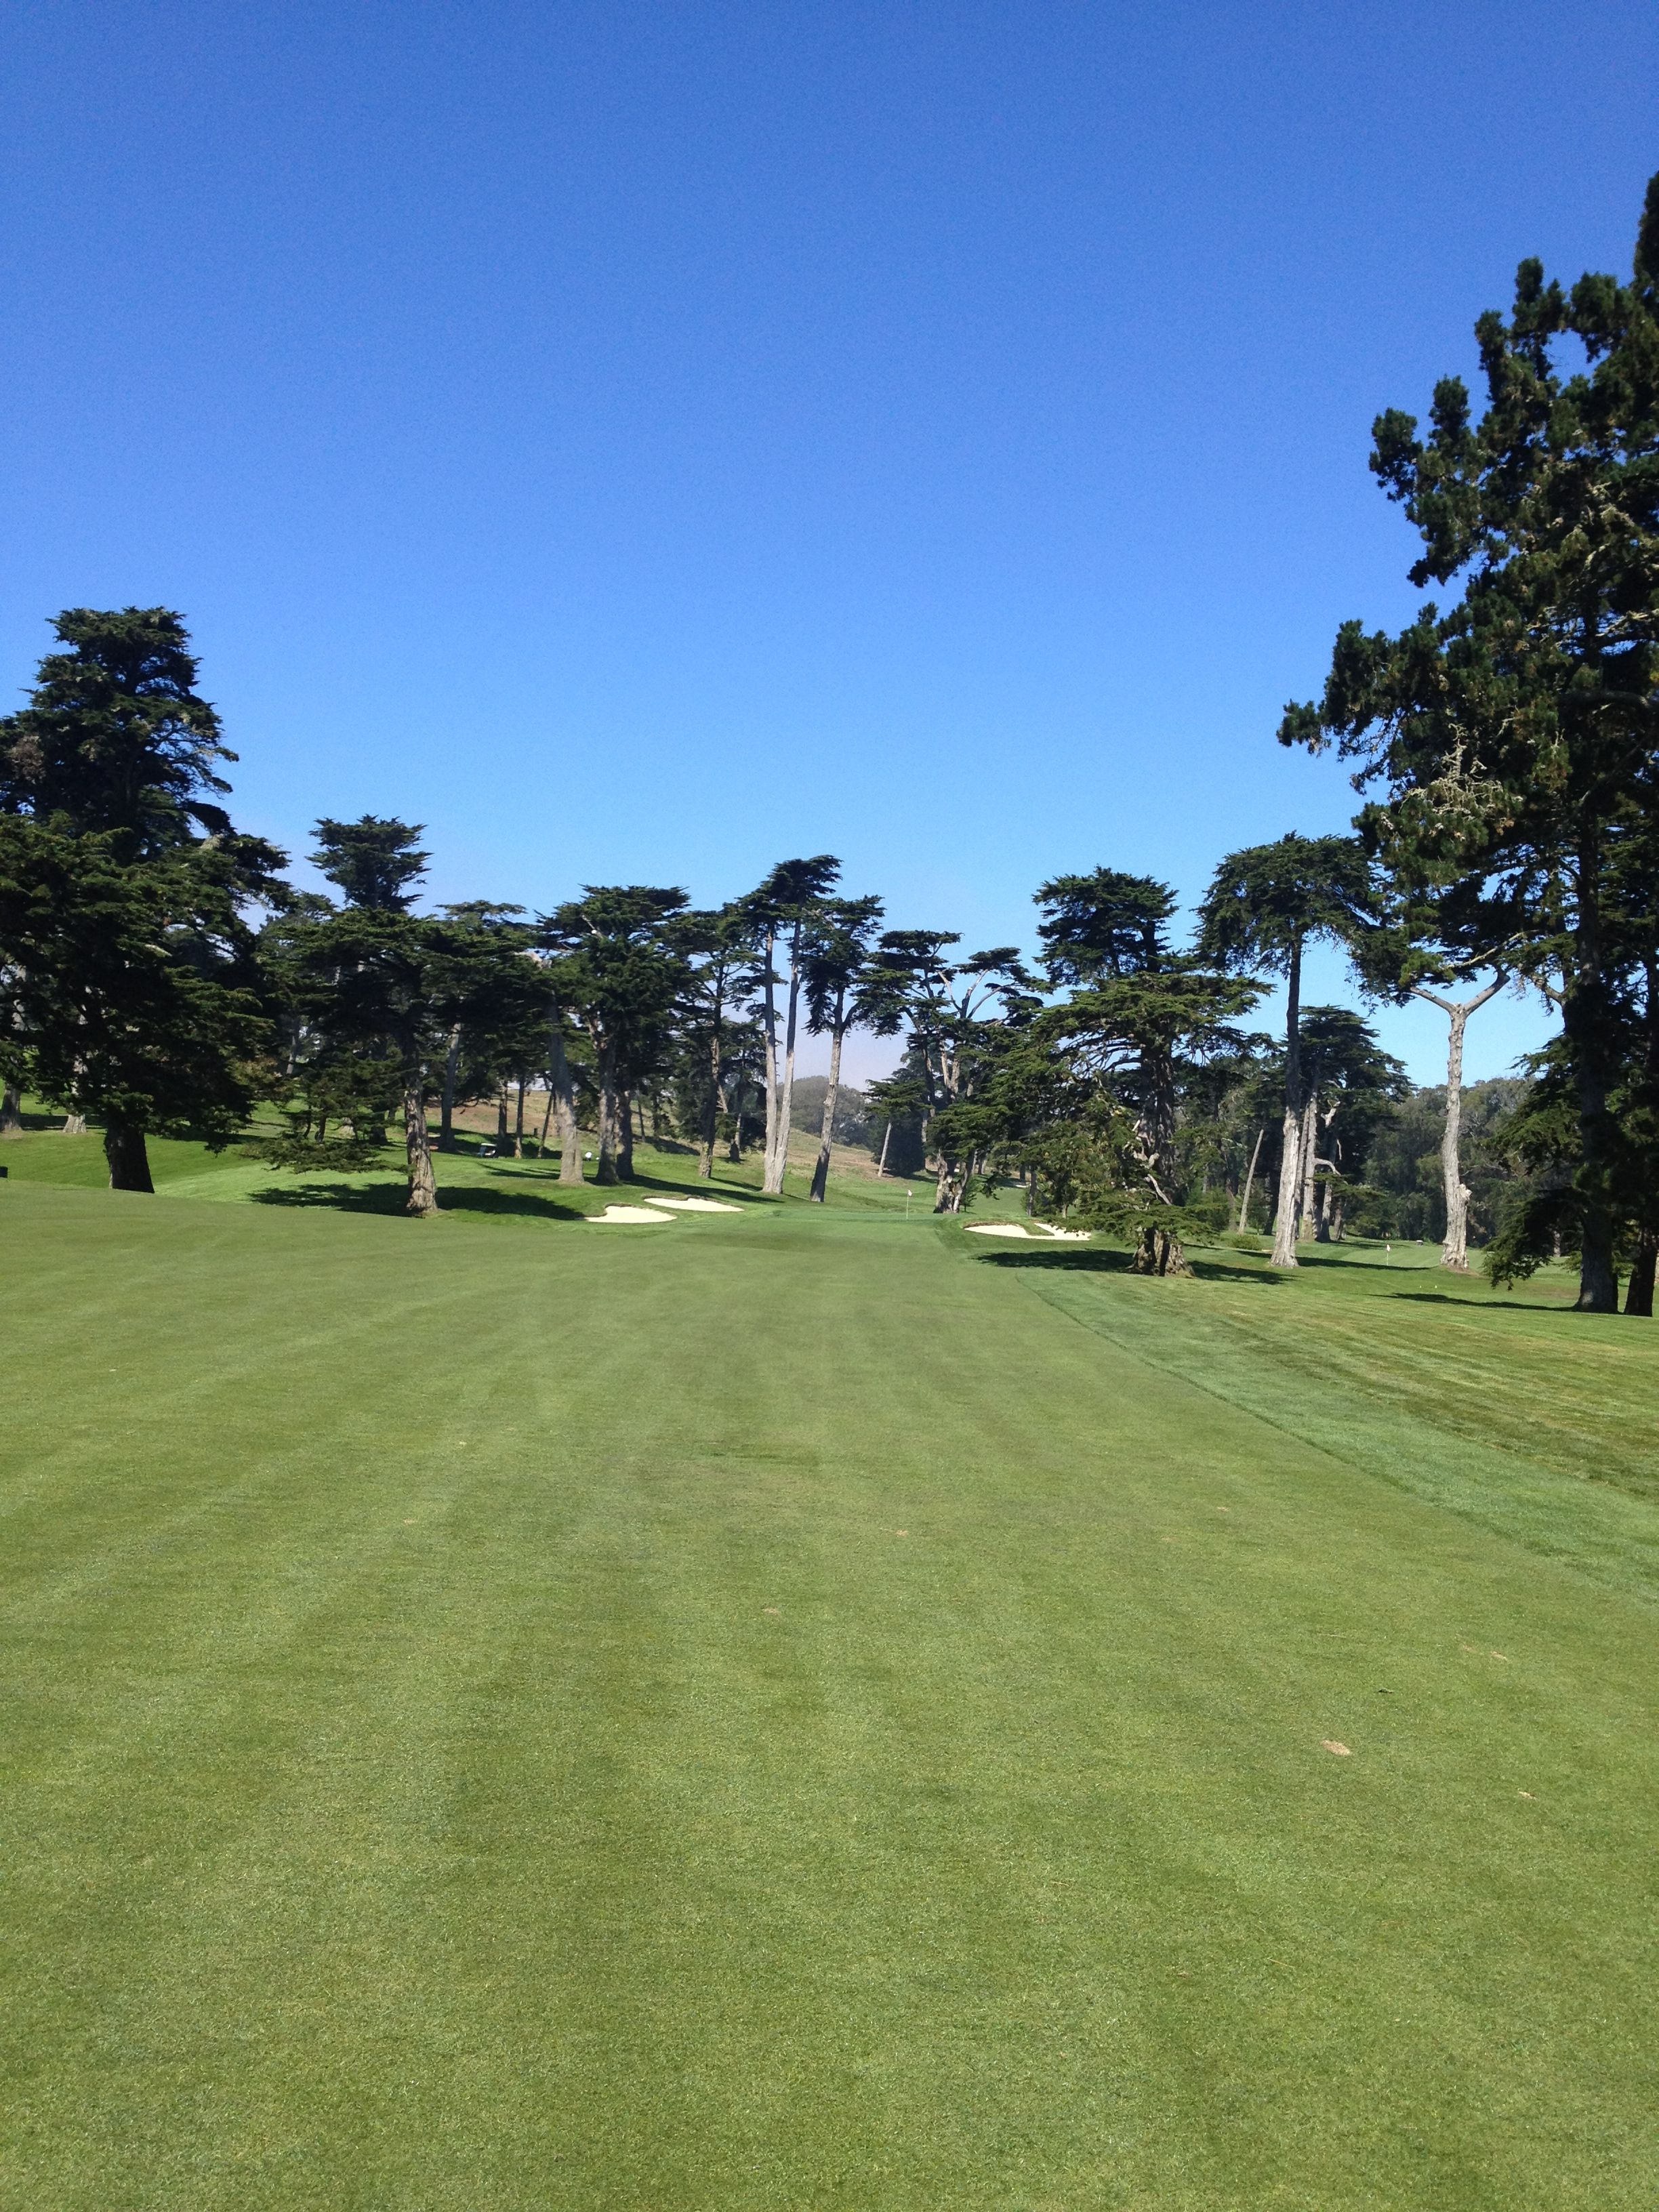 Hole 11, Olympic Club Lake course Golf course